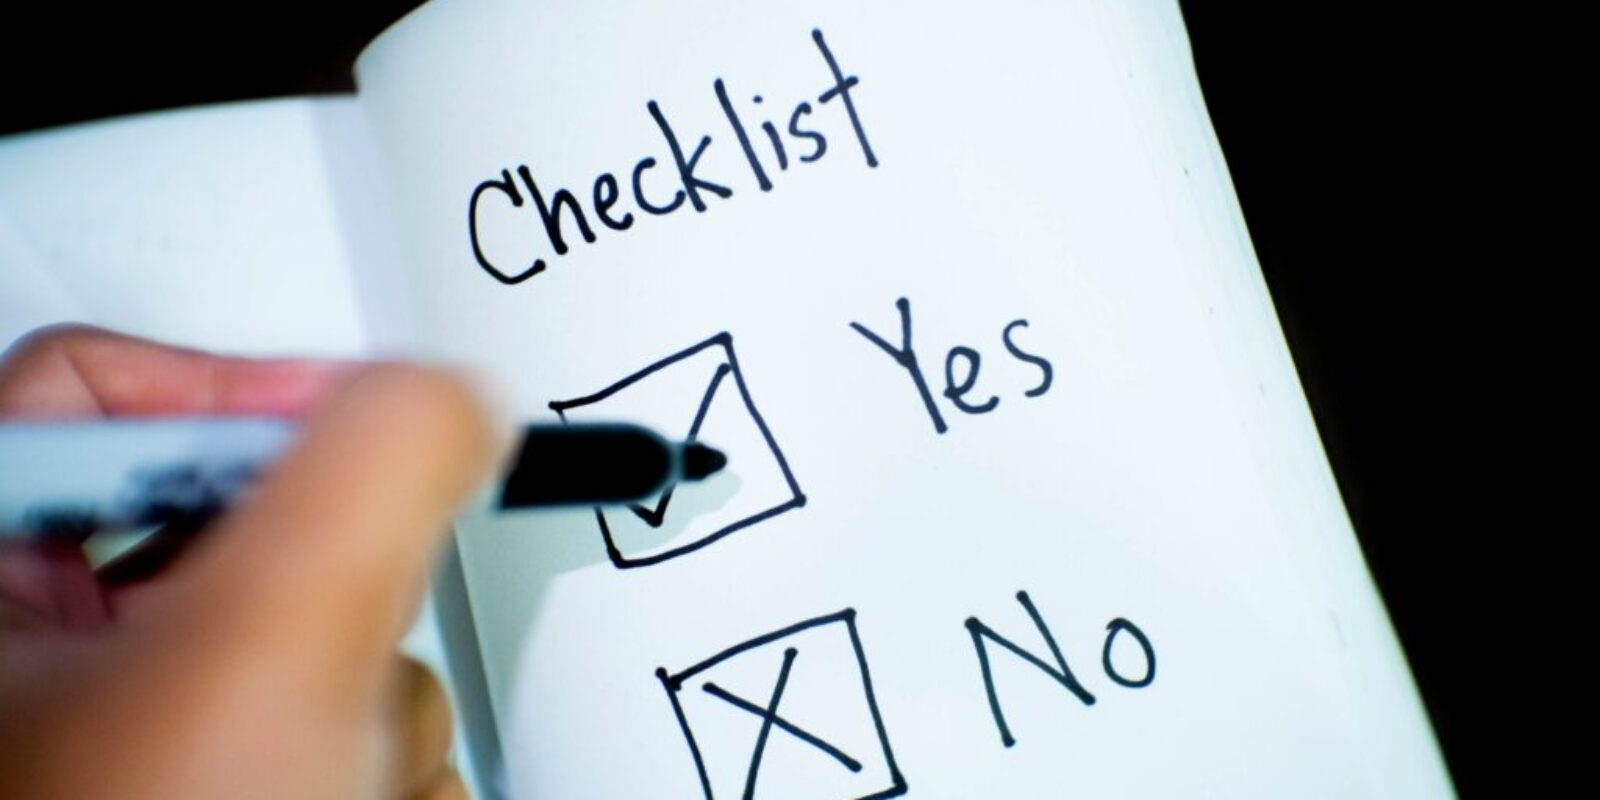 banking-business-checklist-commerce-416322